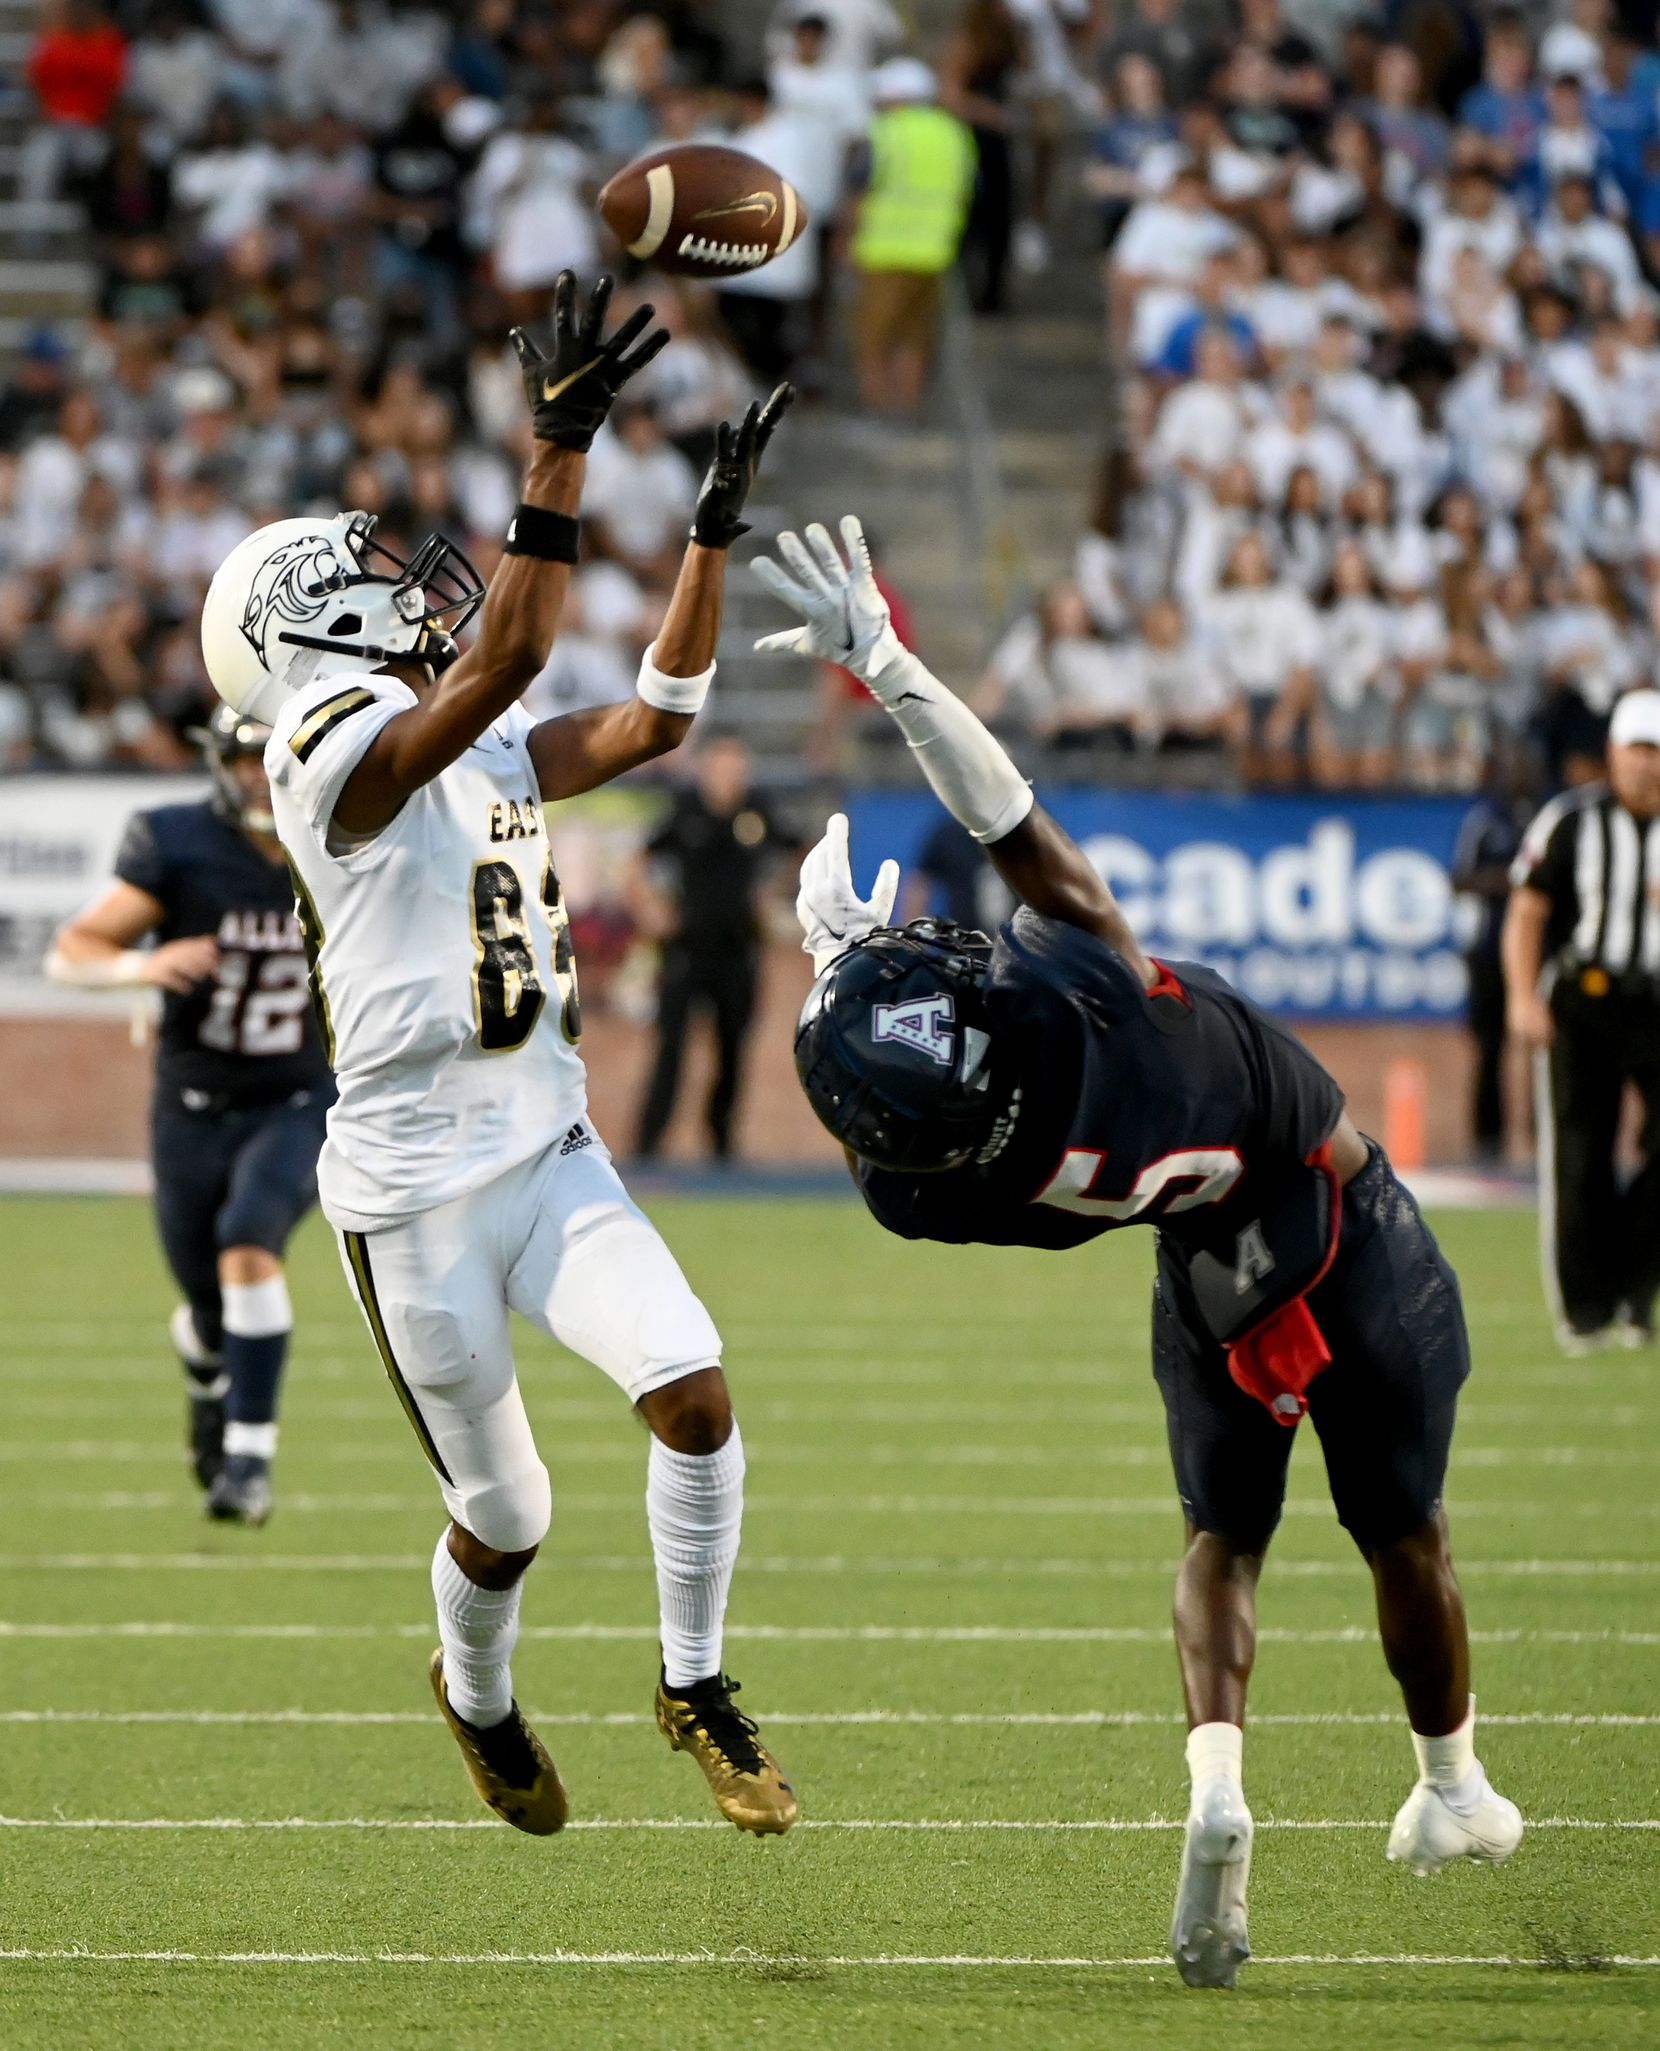 Plano East's Rushil Patel catches a touchdown pass over Allen's Sign Shuva (5) in the first half during a high school football game between Plano East and Allen, Friday, Aug. 27, 2021, in Allen, Texas. (Matt Strasen/Special Contributor)